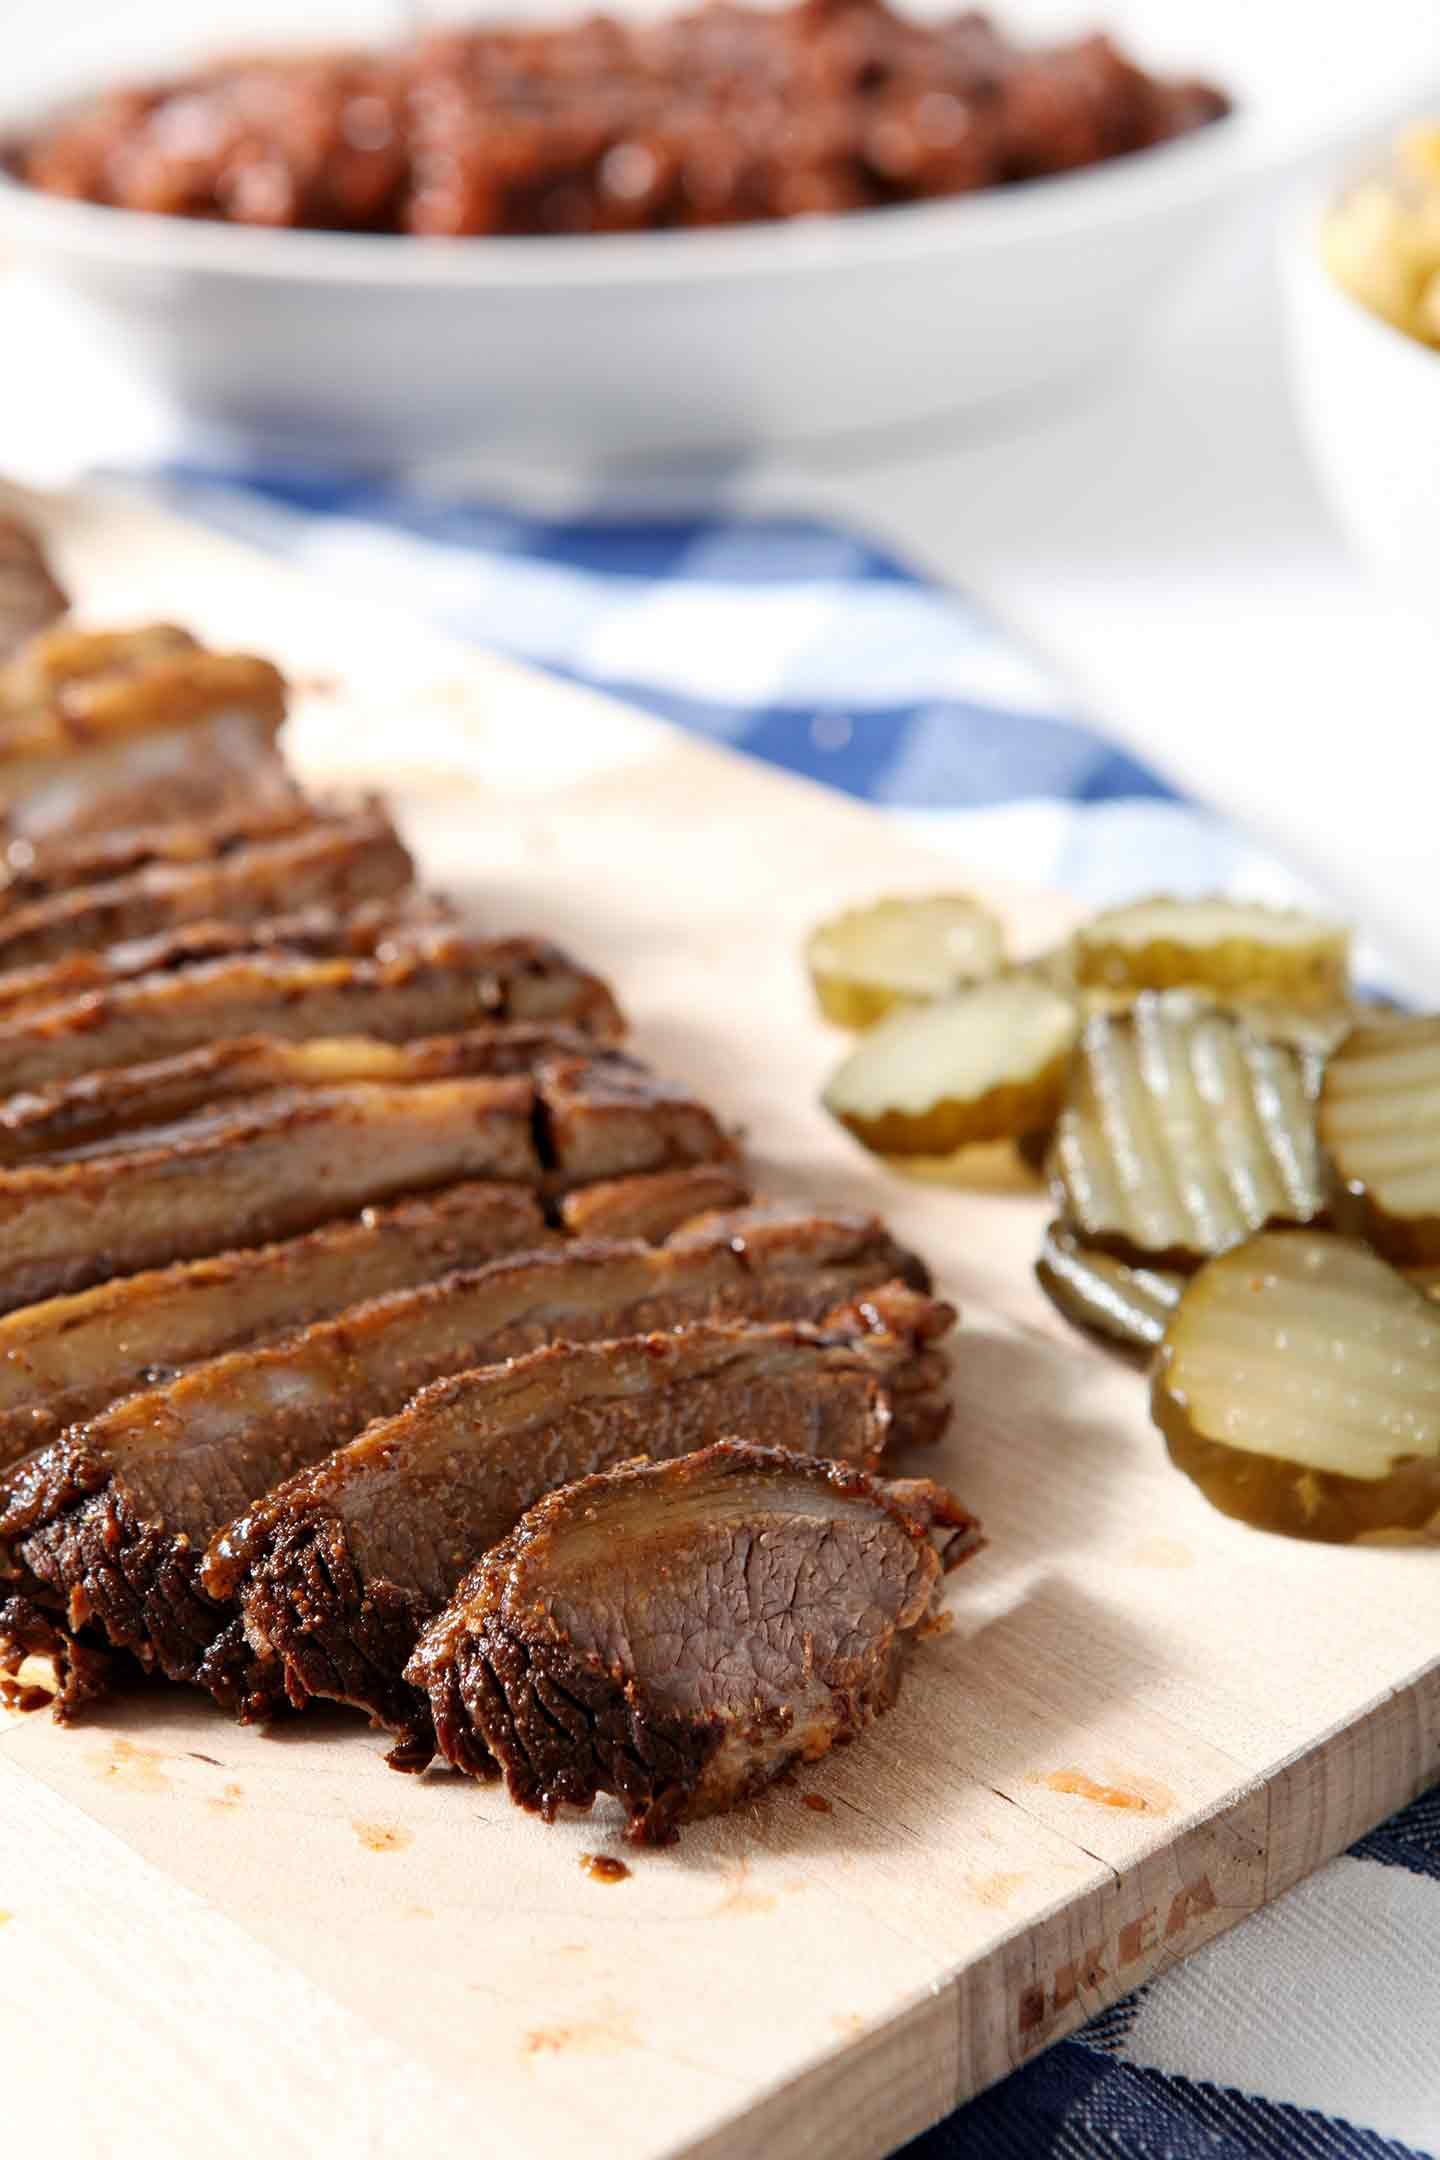 Sliced Instant Pot BBQ Brisket sits on a wooden cutting board with pickles and is served with baked beans, as shown in the background.